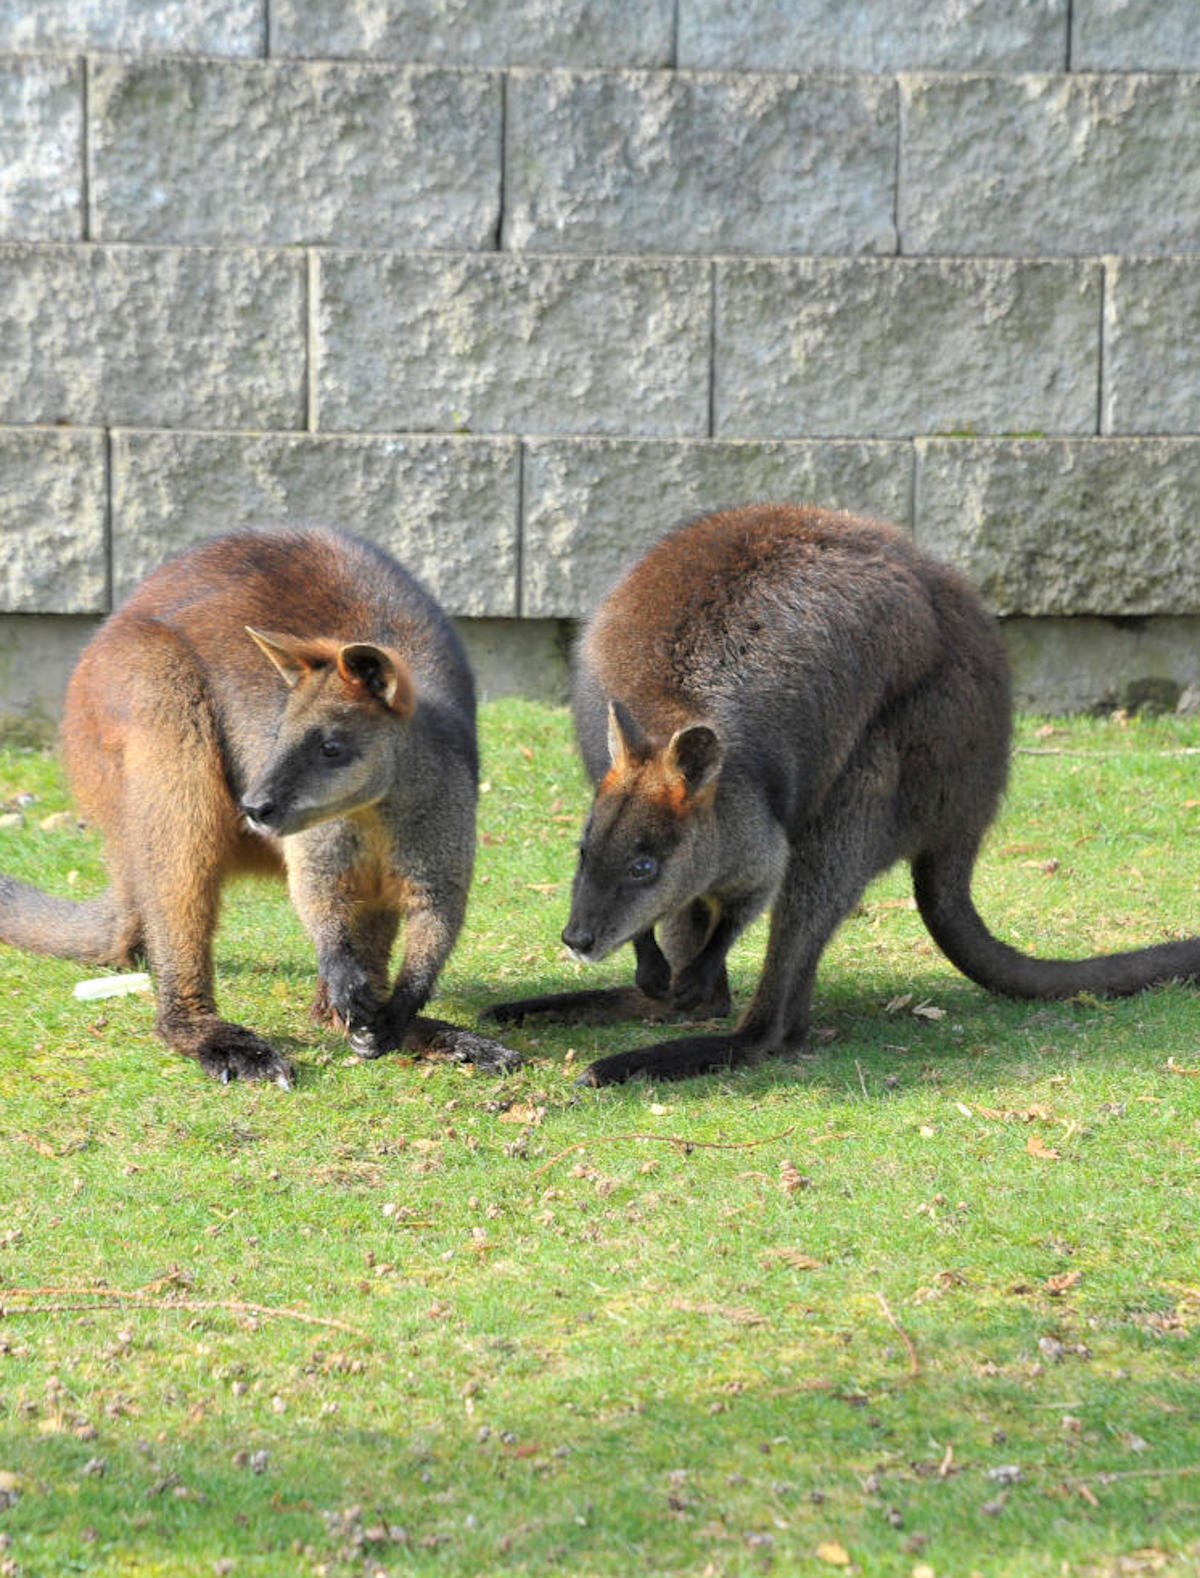 Two wallabies with their heads down